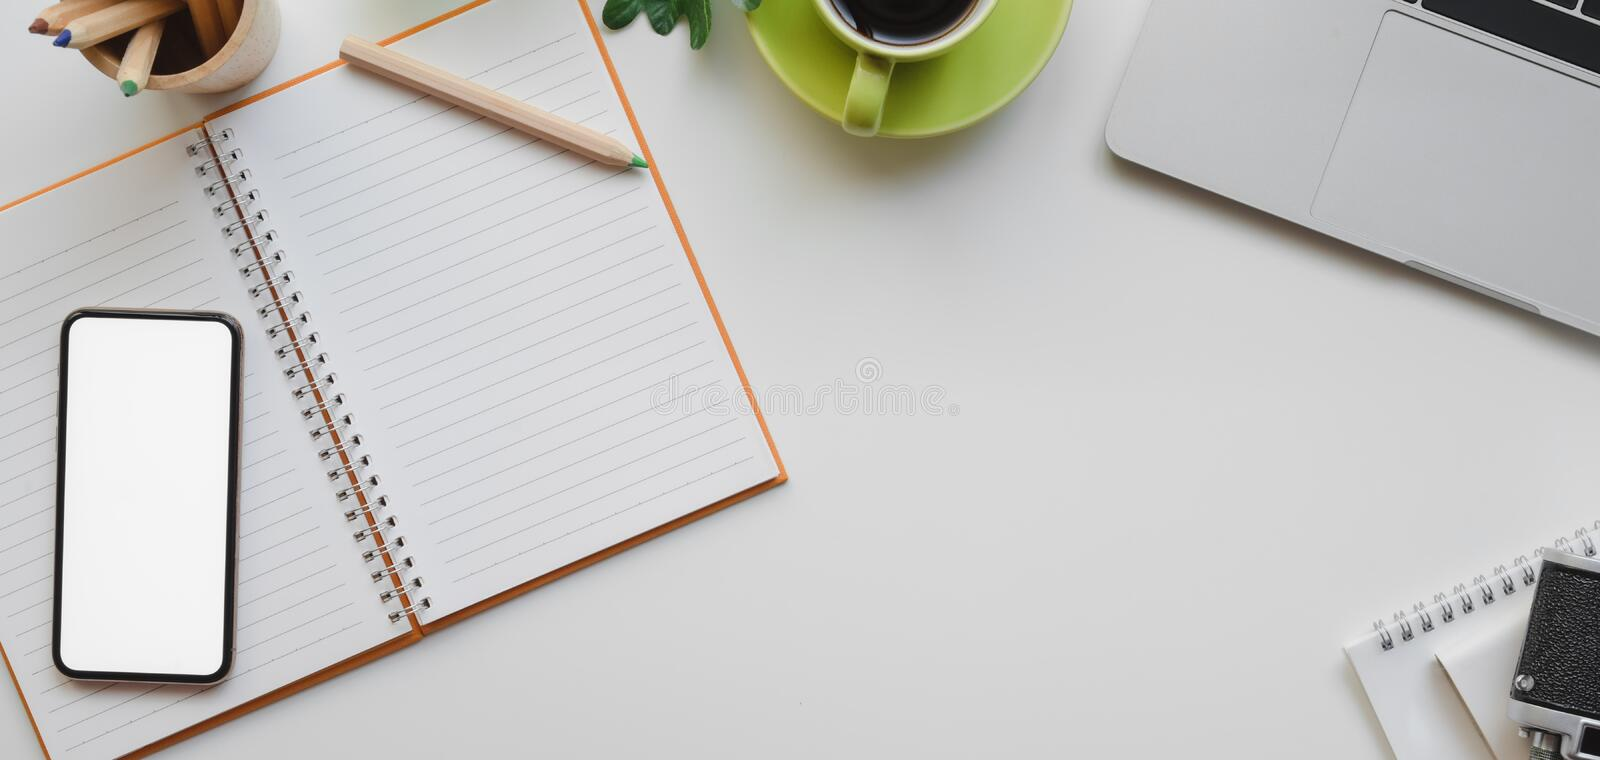 Overhead shot of designer workplace with laptop computer, mock up smartphone and office supplies. On white table background stock images